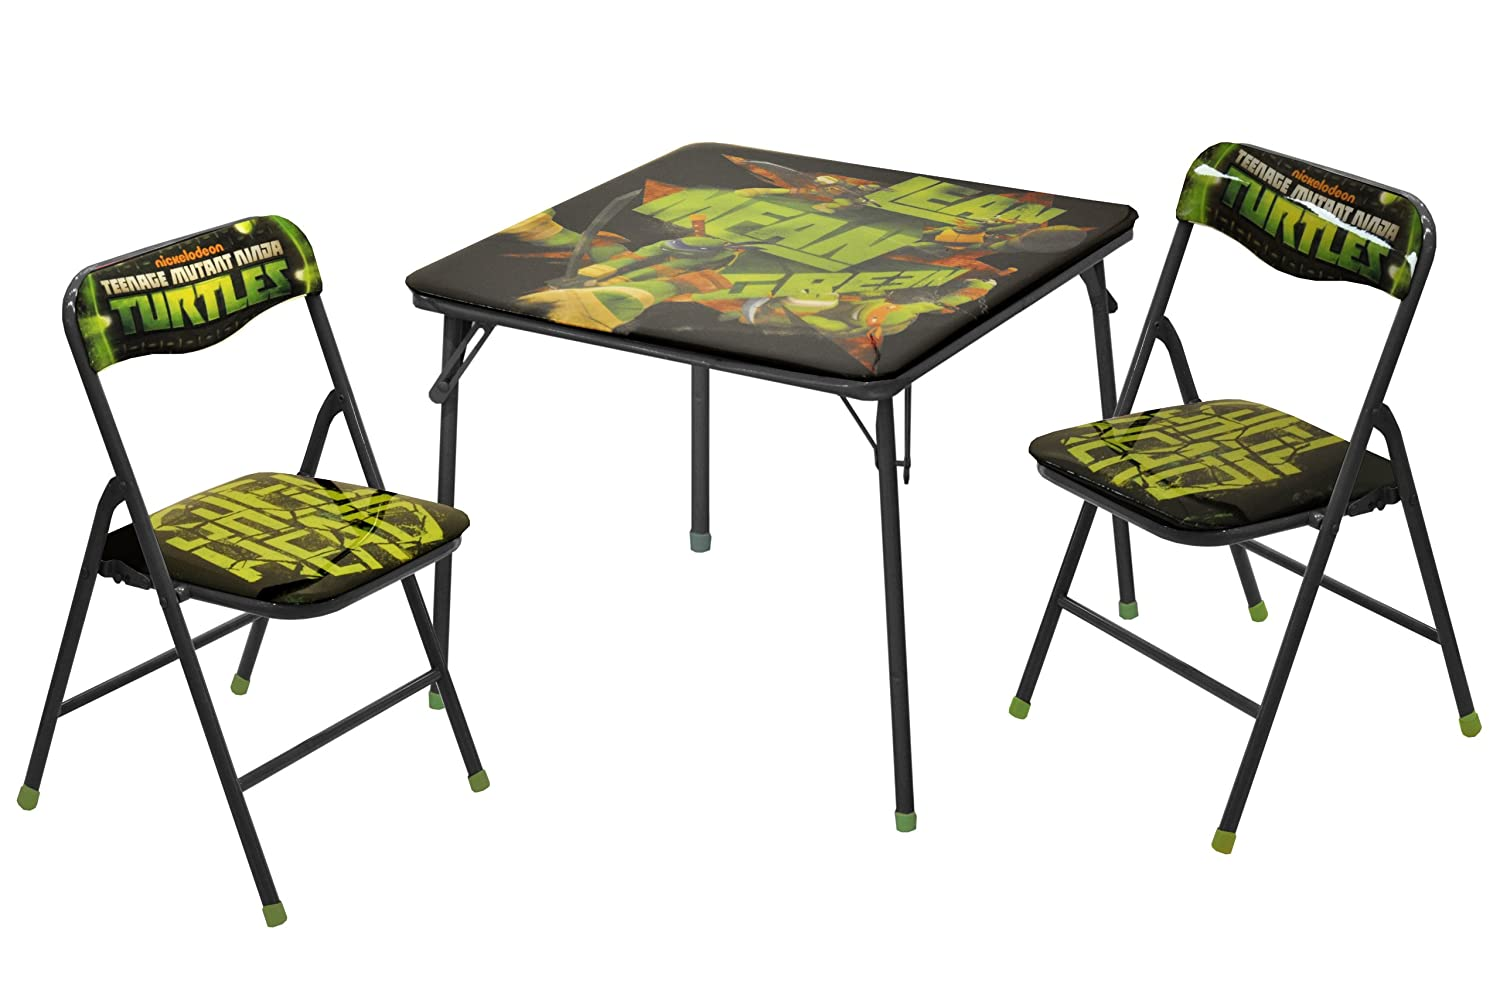 ninja turtles chair cushions with ties teenage mutant table and set